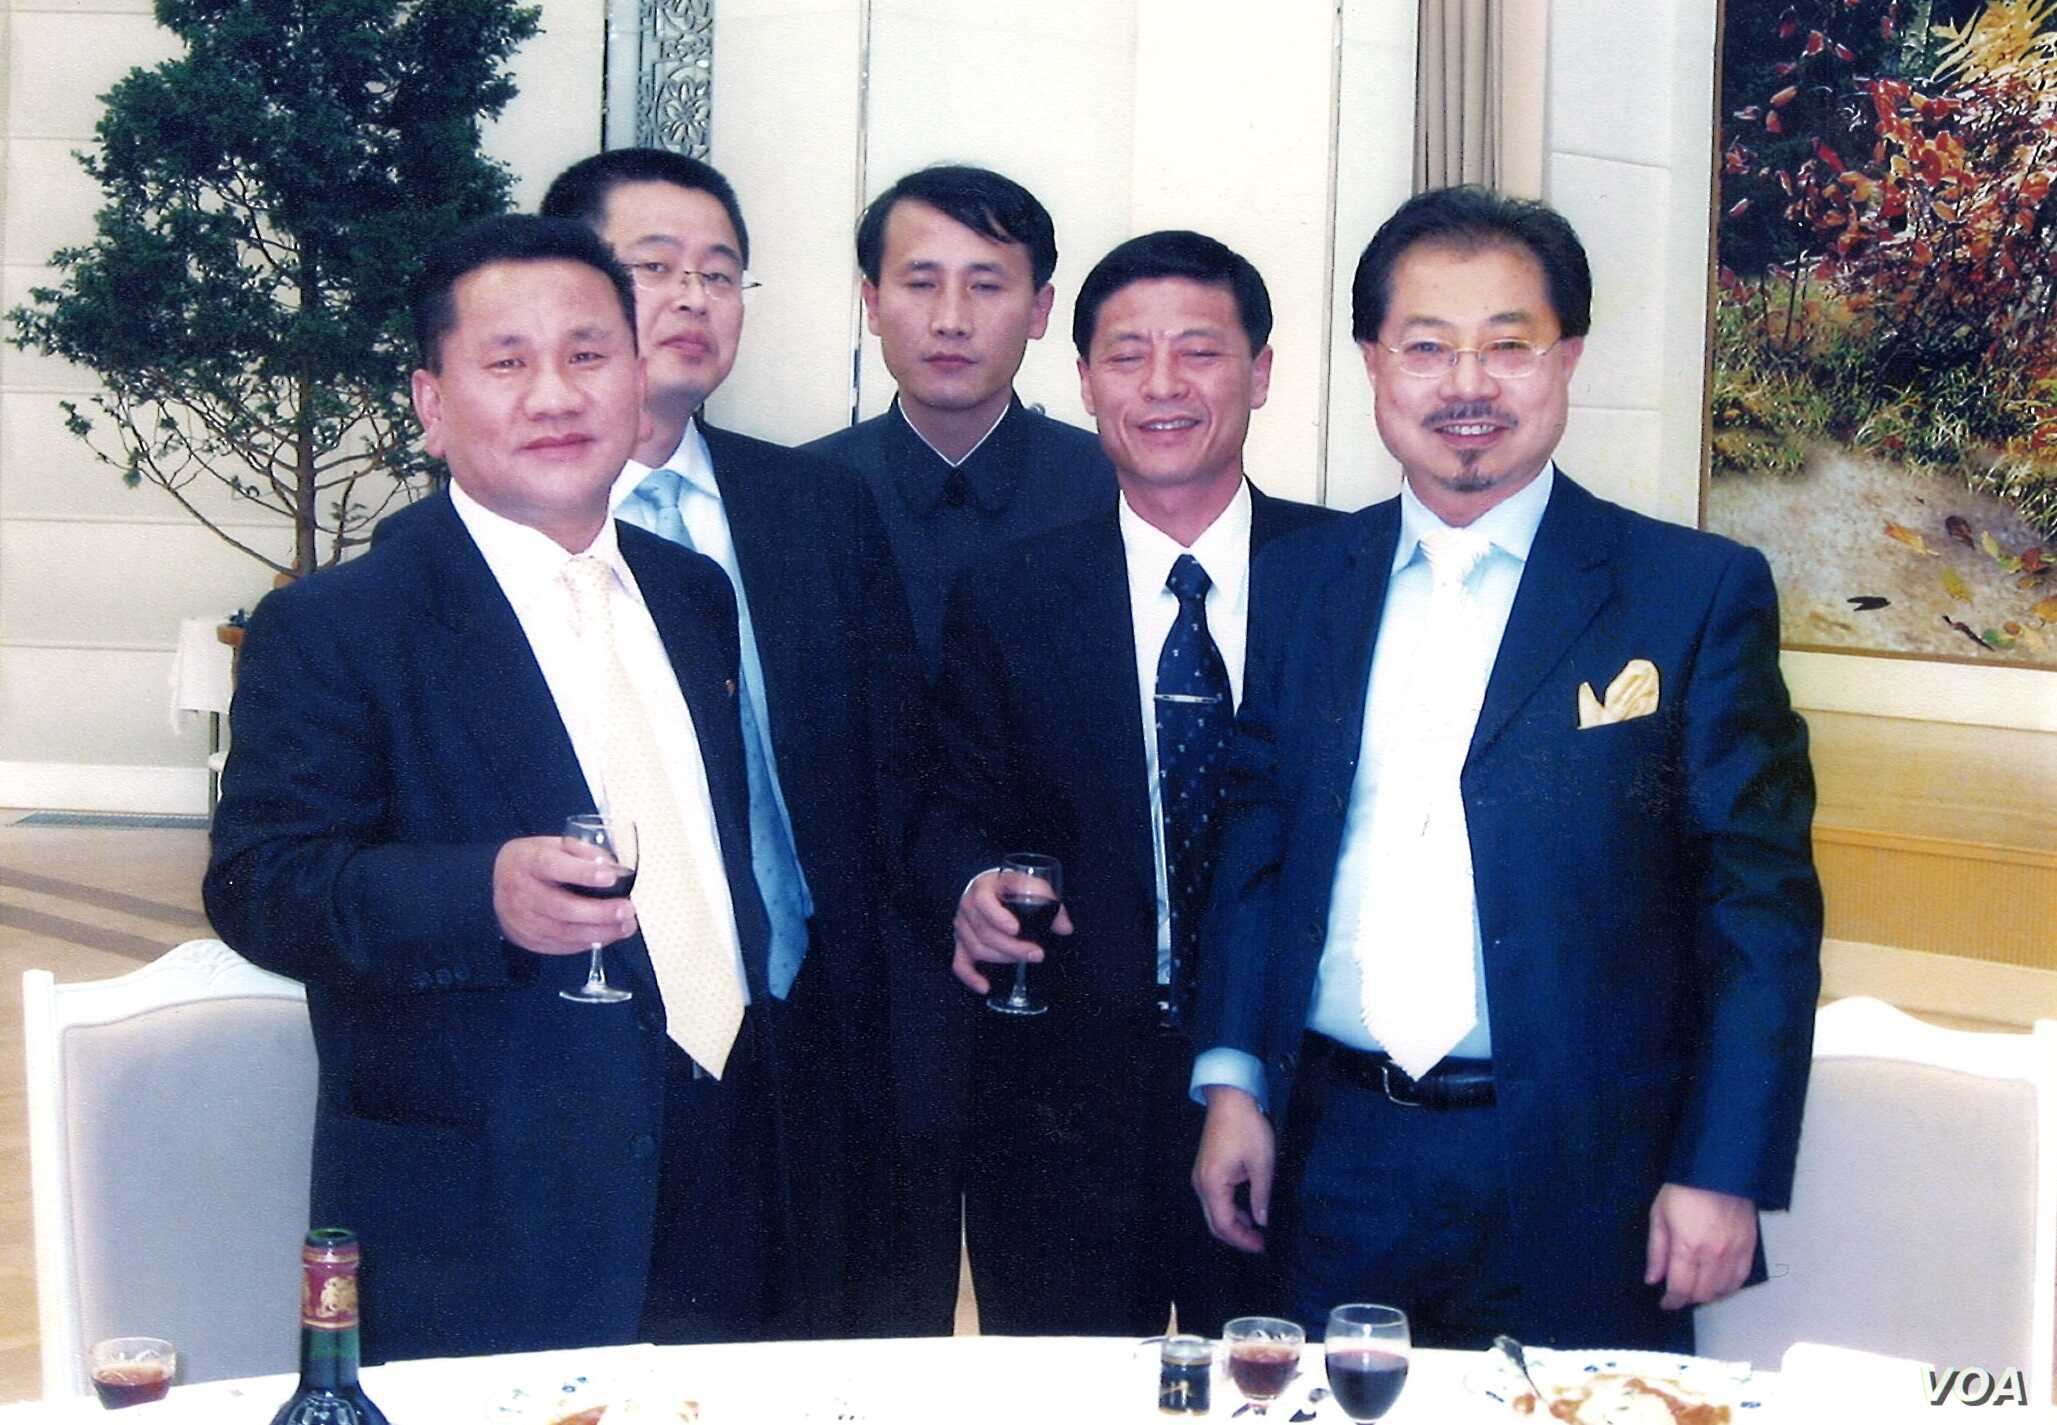 Ri Jong Ho, left, poses with Chinese investment tycoon Sam Pa, right, and others at a banquet hall in Pyongyang in January 2007.